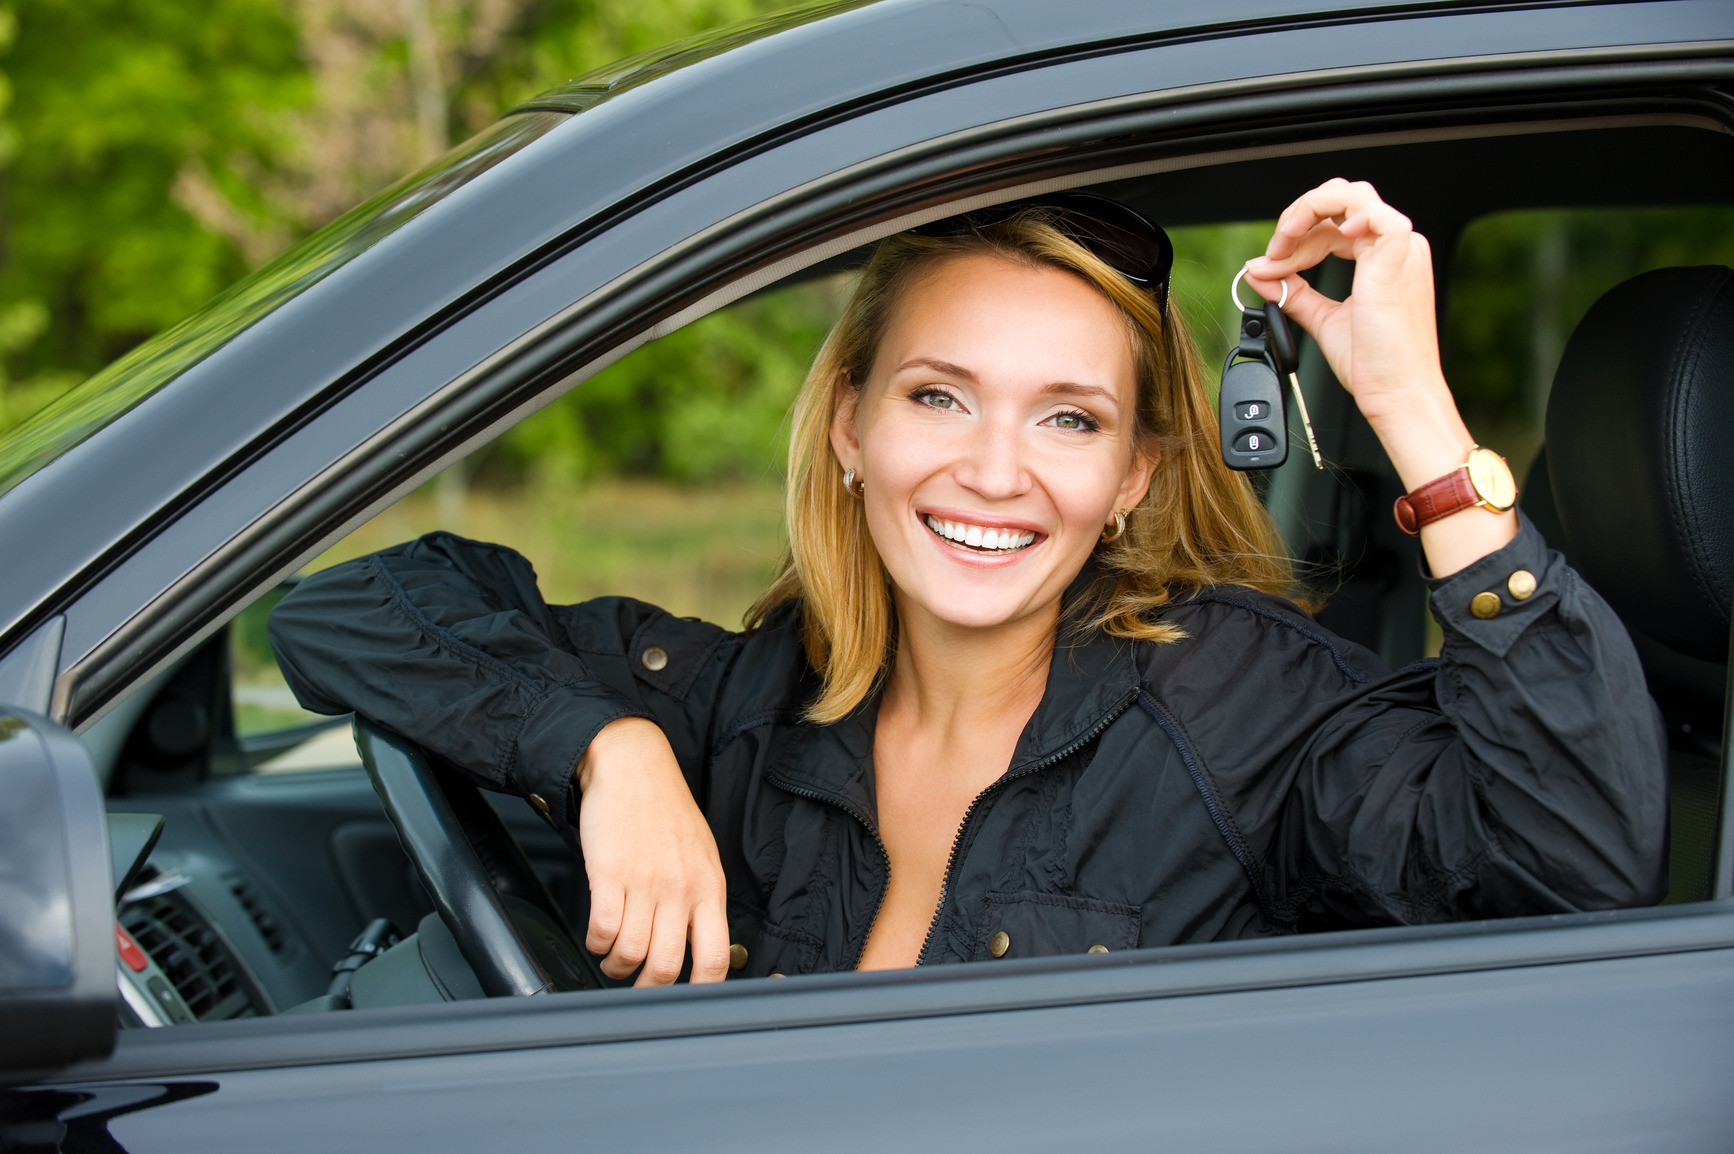 Car Loans for First-Time Buyers in Jonesboro at Premier Auto